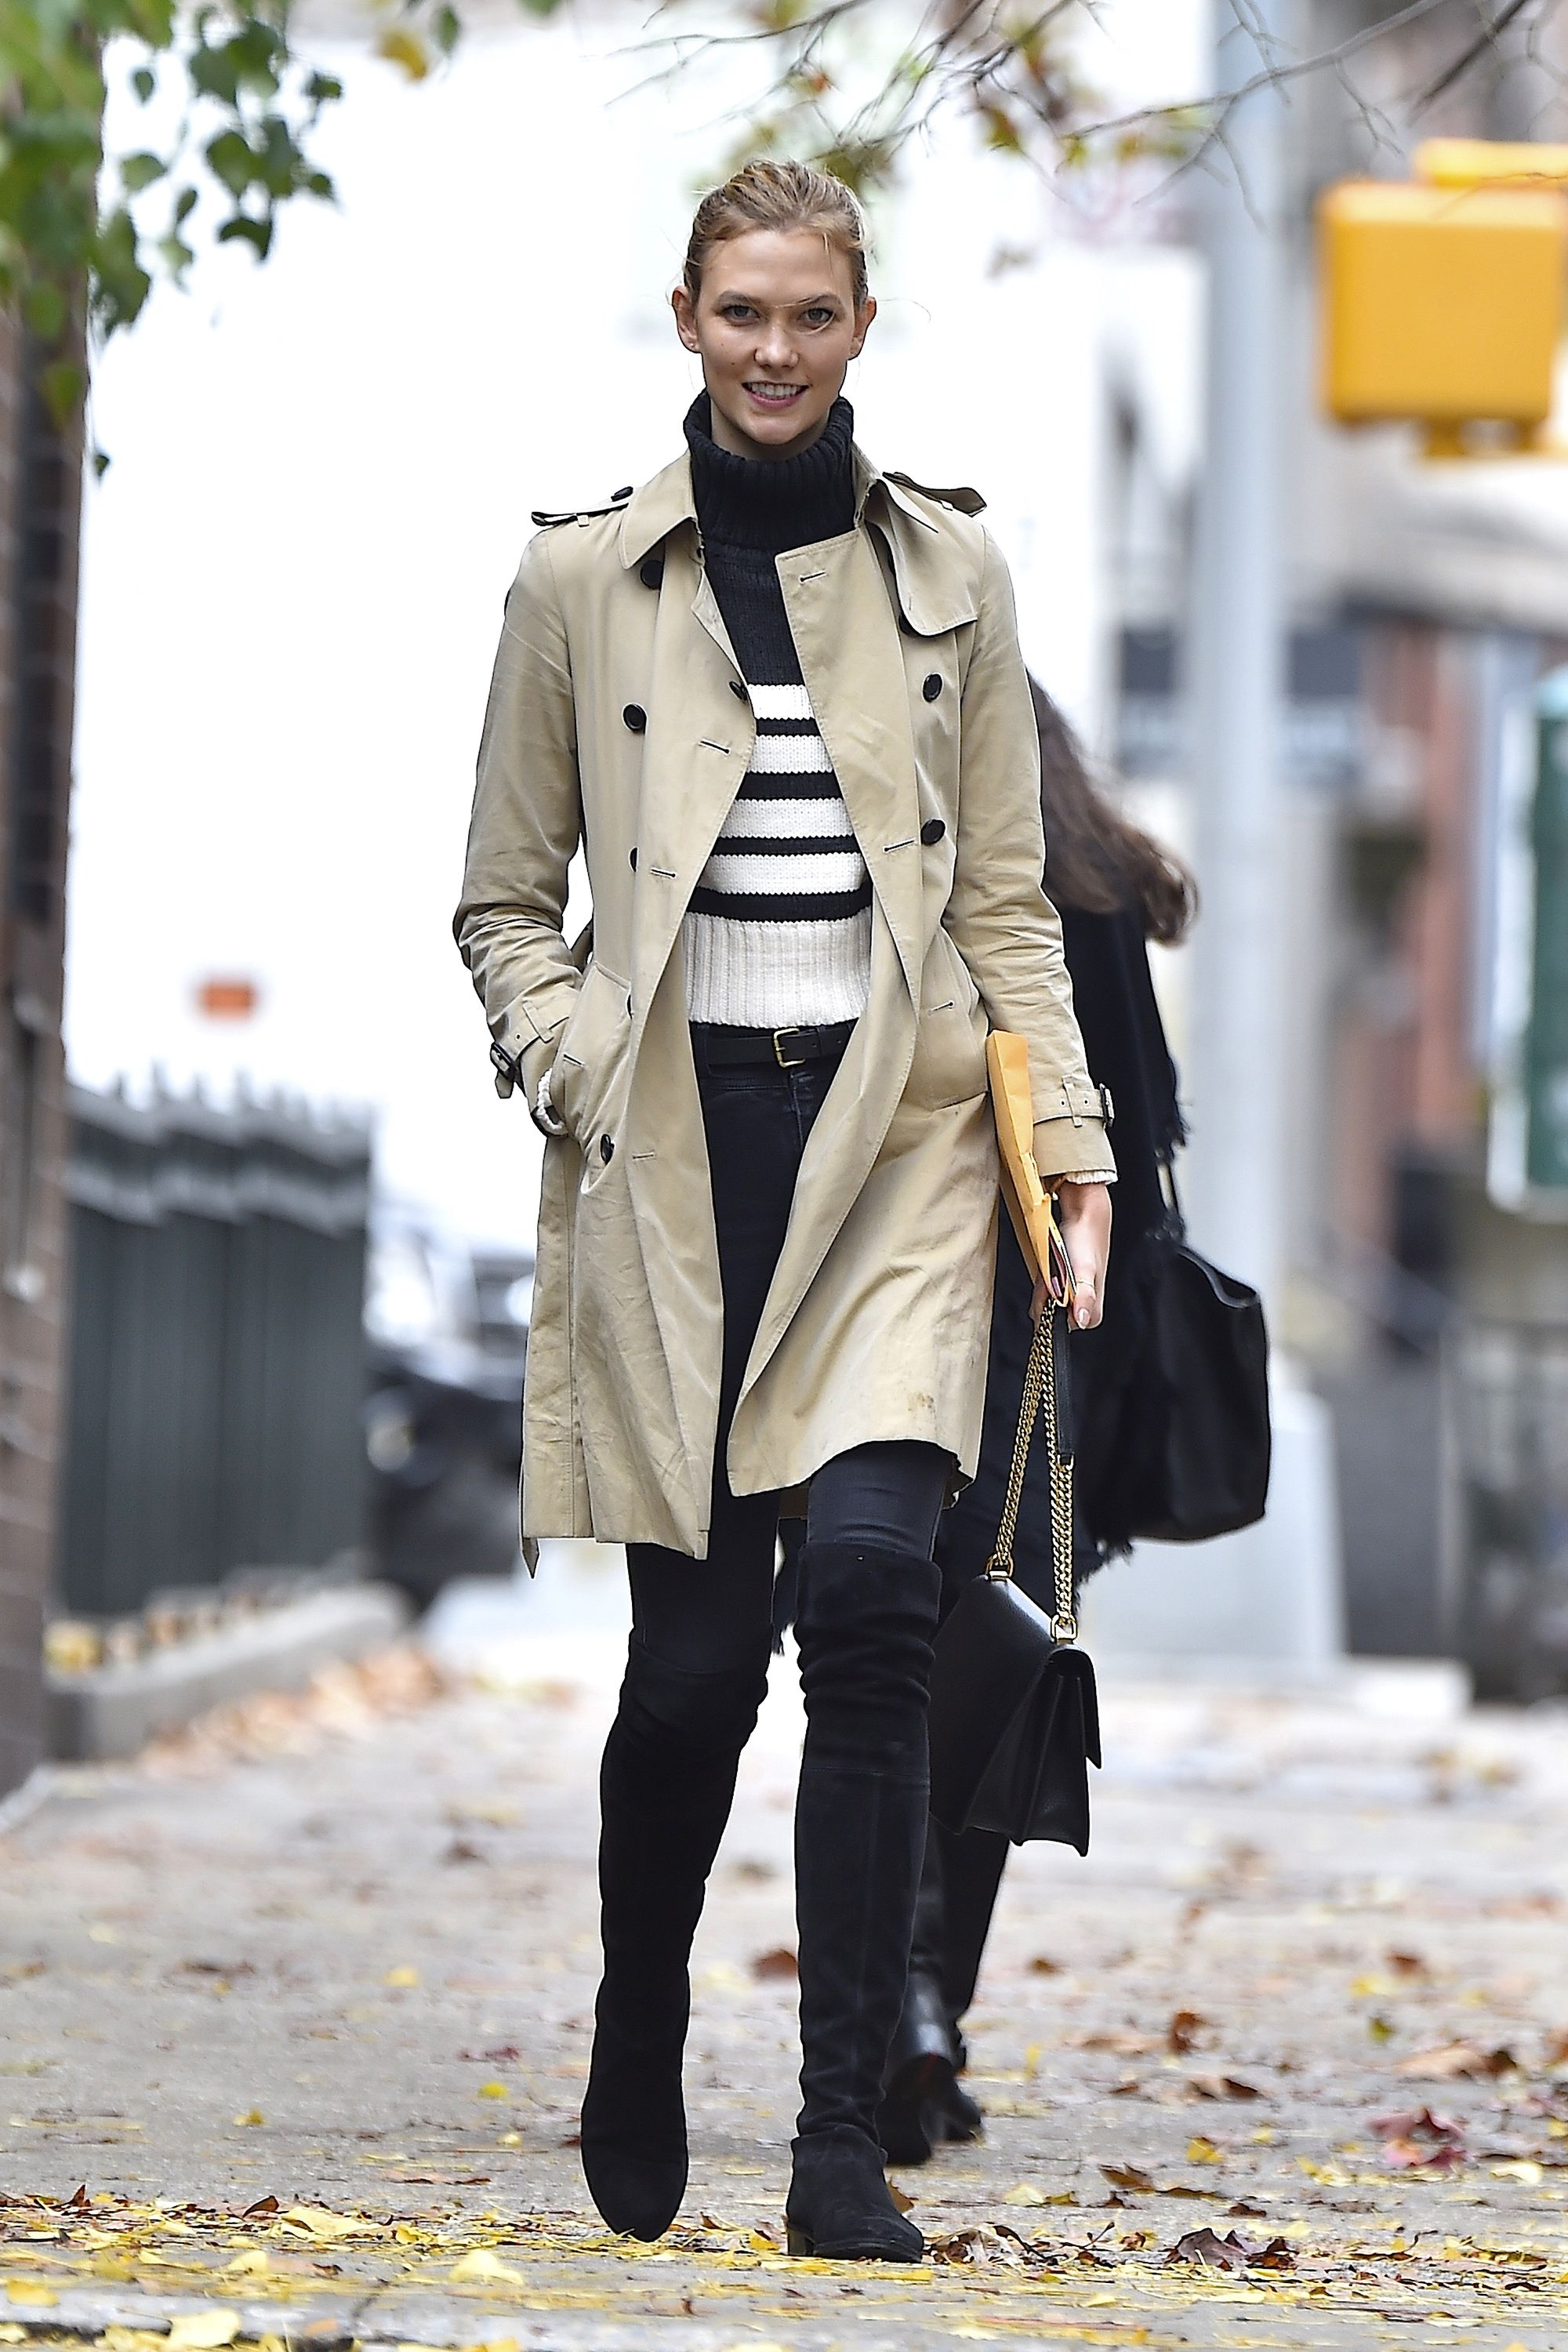 50 Turtleneck Outfits for a Chic Winter Look - How To Wear A